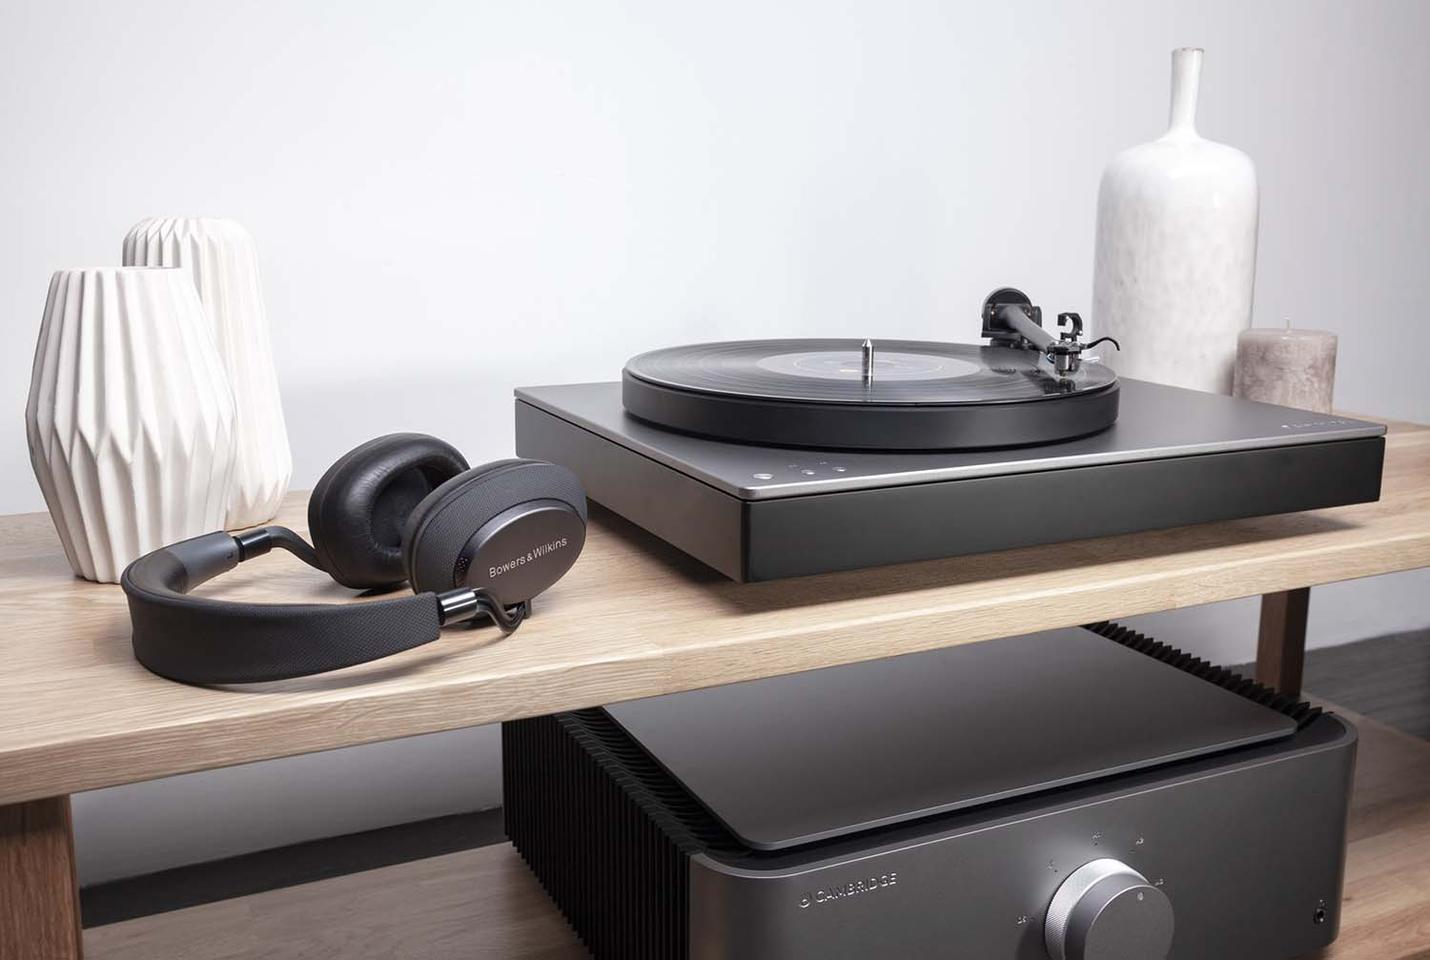 The Alva TT turntable can be wired up to a living room hi-fi system, or can stream high resolution audio to Bluetooth speakers and headphones